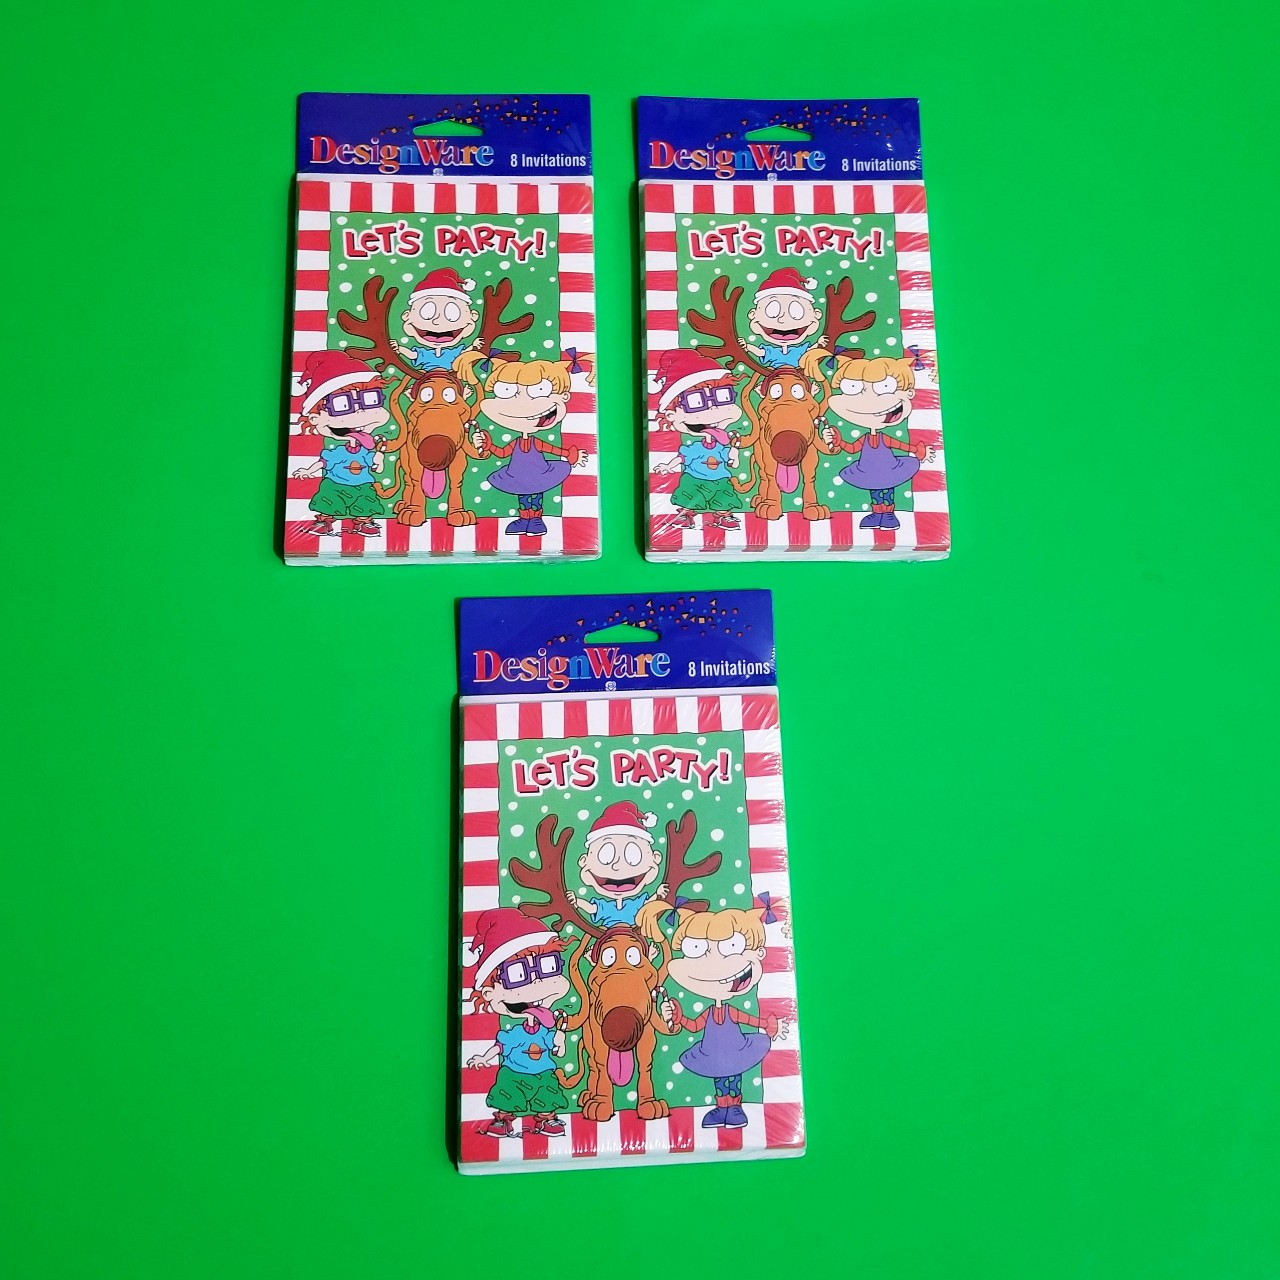 Rugrats Christmas.Vintage 90s Rugrats Christmas Party Invitations Depop